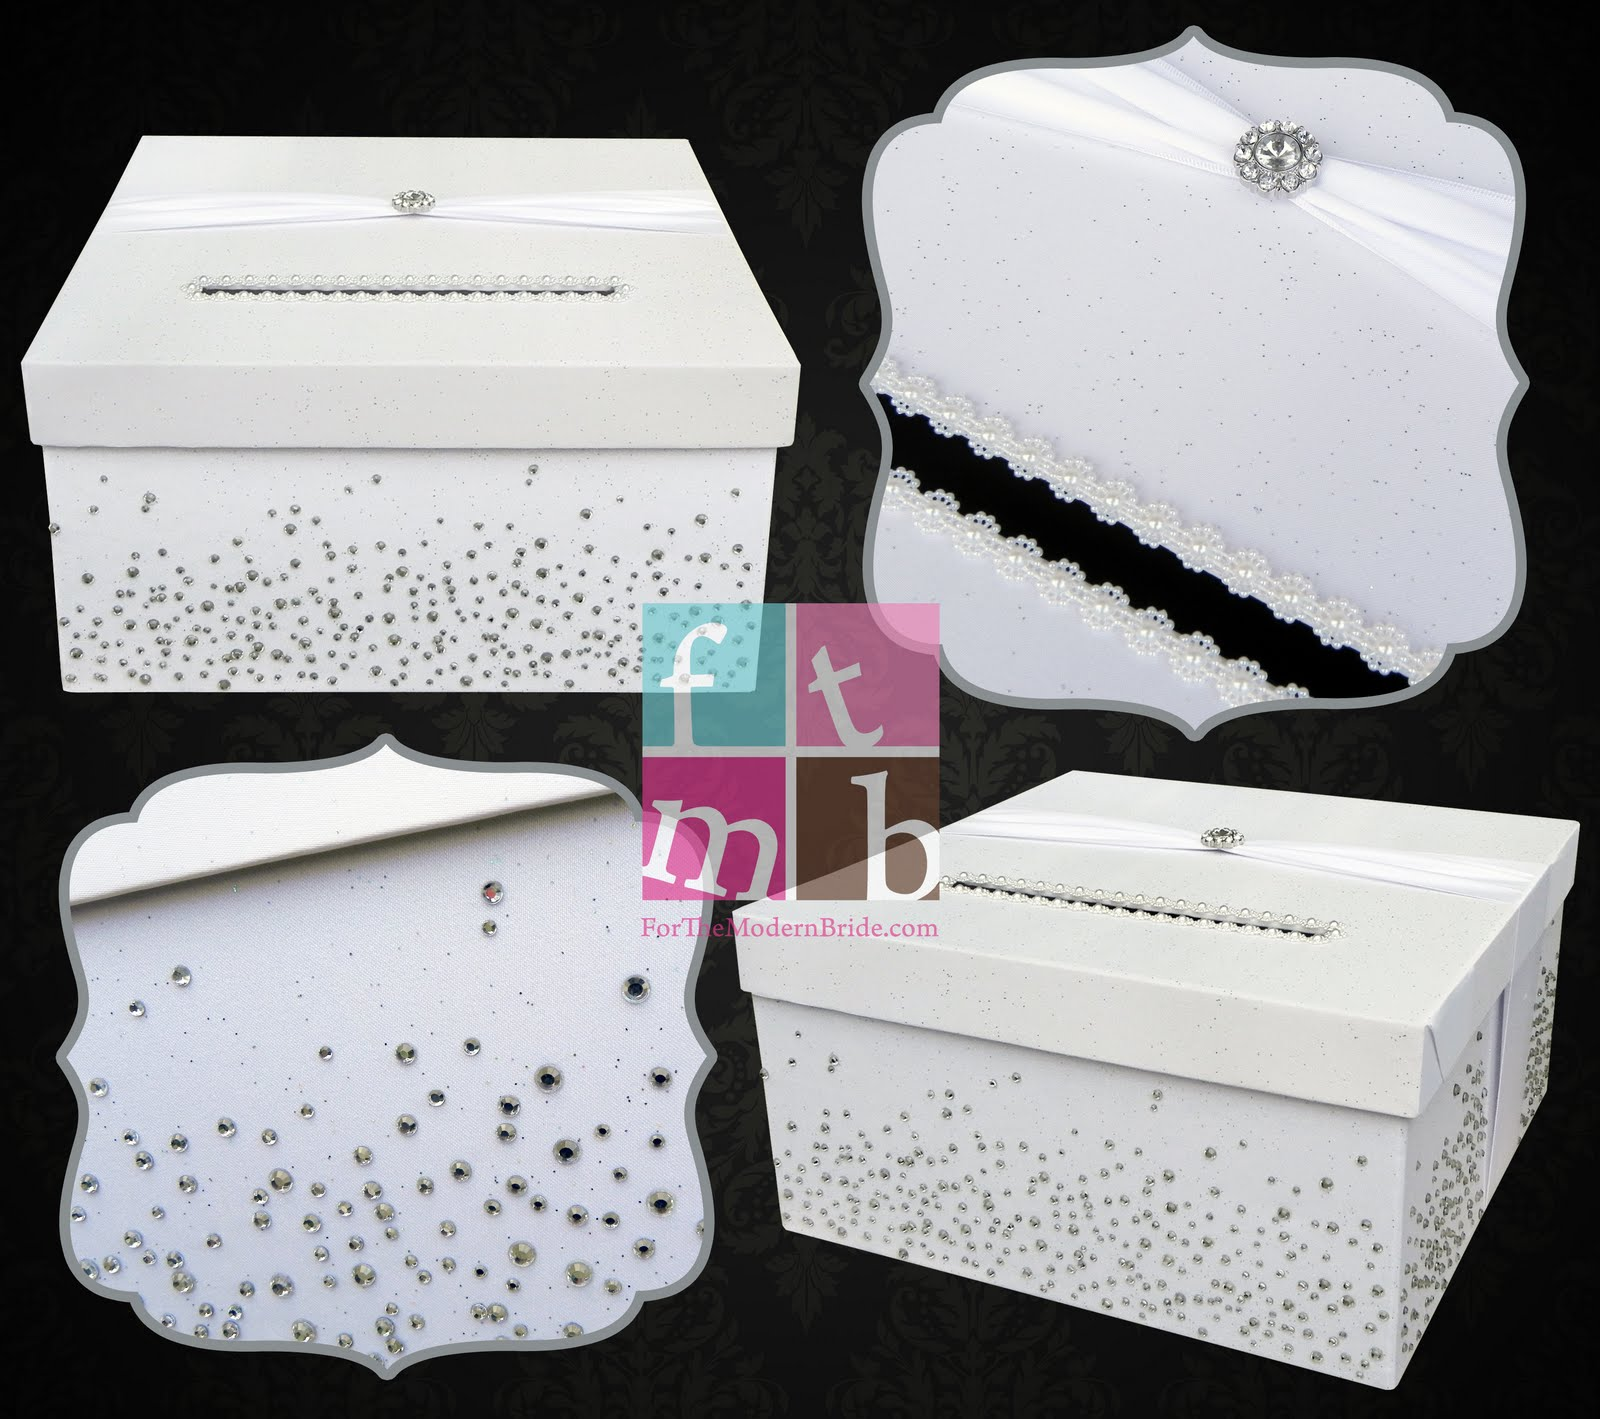 A Simple Single Custom Wedding Card Box Turned Into Sparkly Beauty That Fits Perfectly Chris S White Winter Wonderland